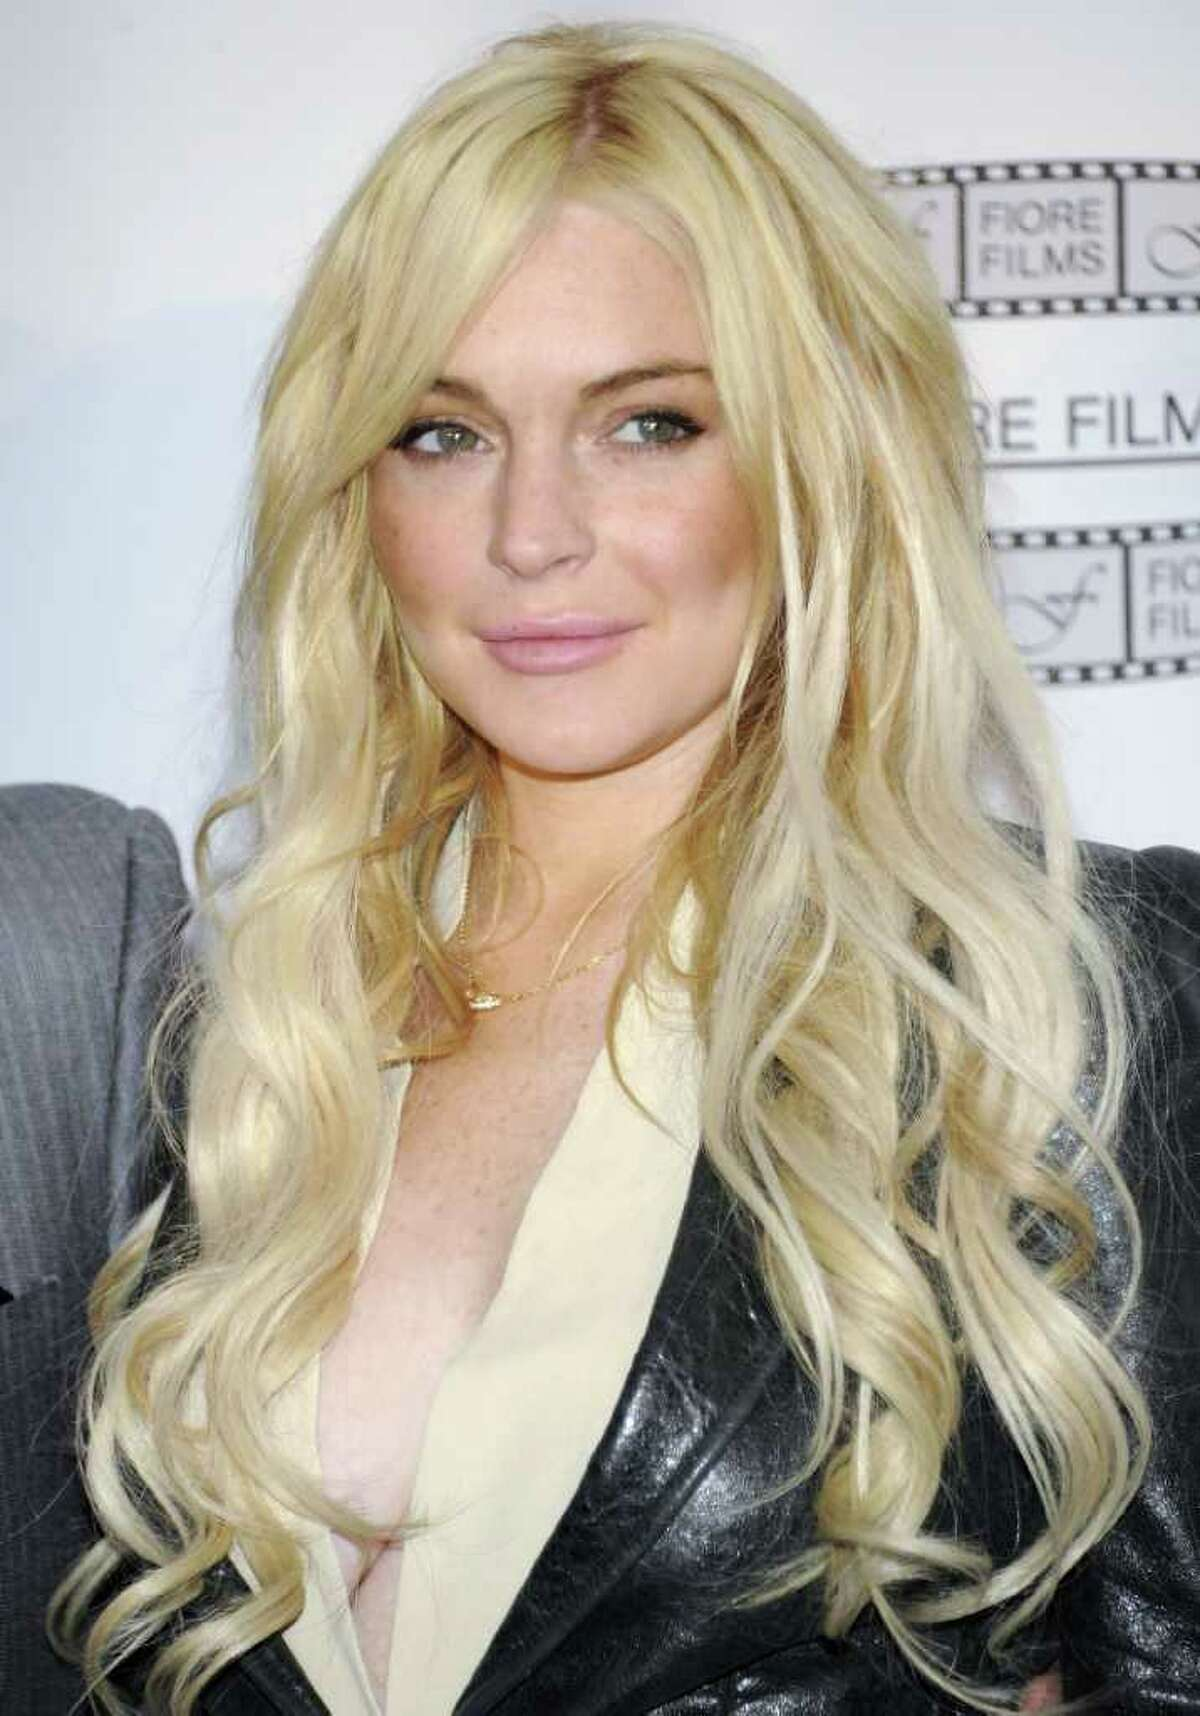 FILE - In this April 12, 2011 file photo, actress Lindsay Lohan poses during a news conference for the film